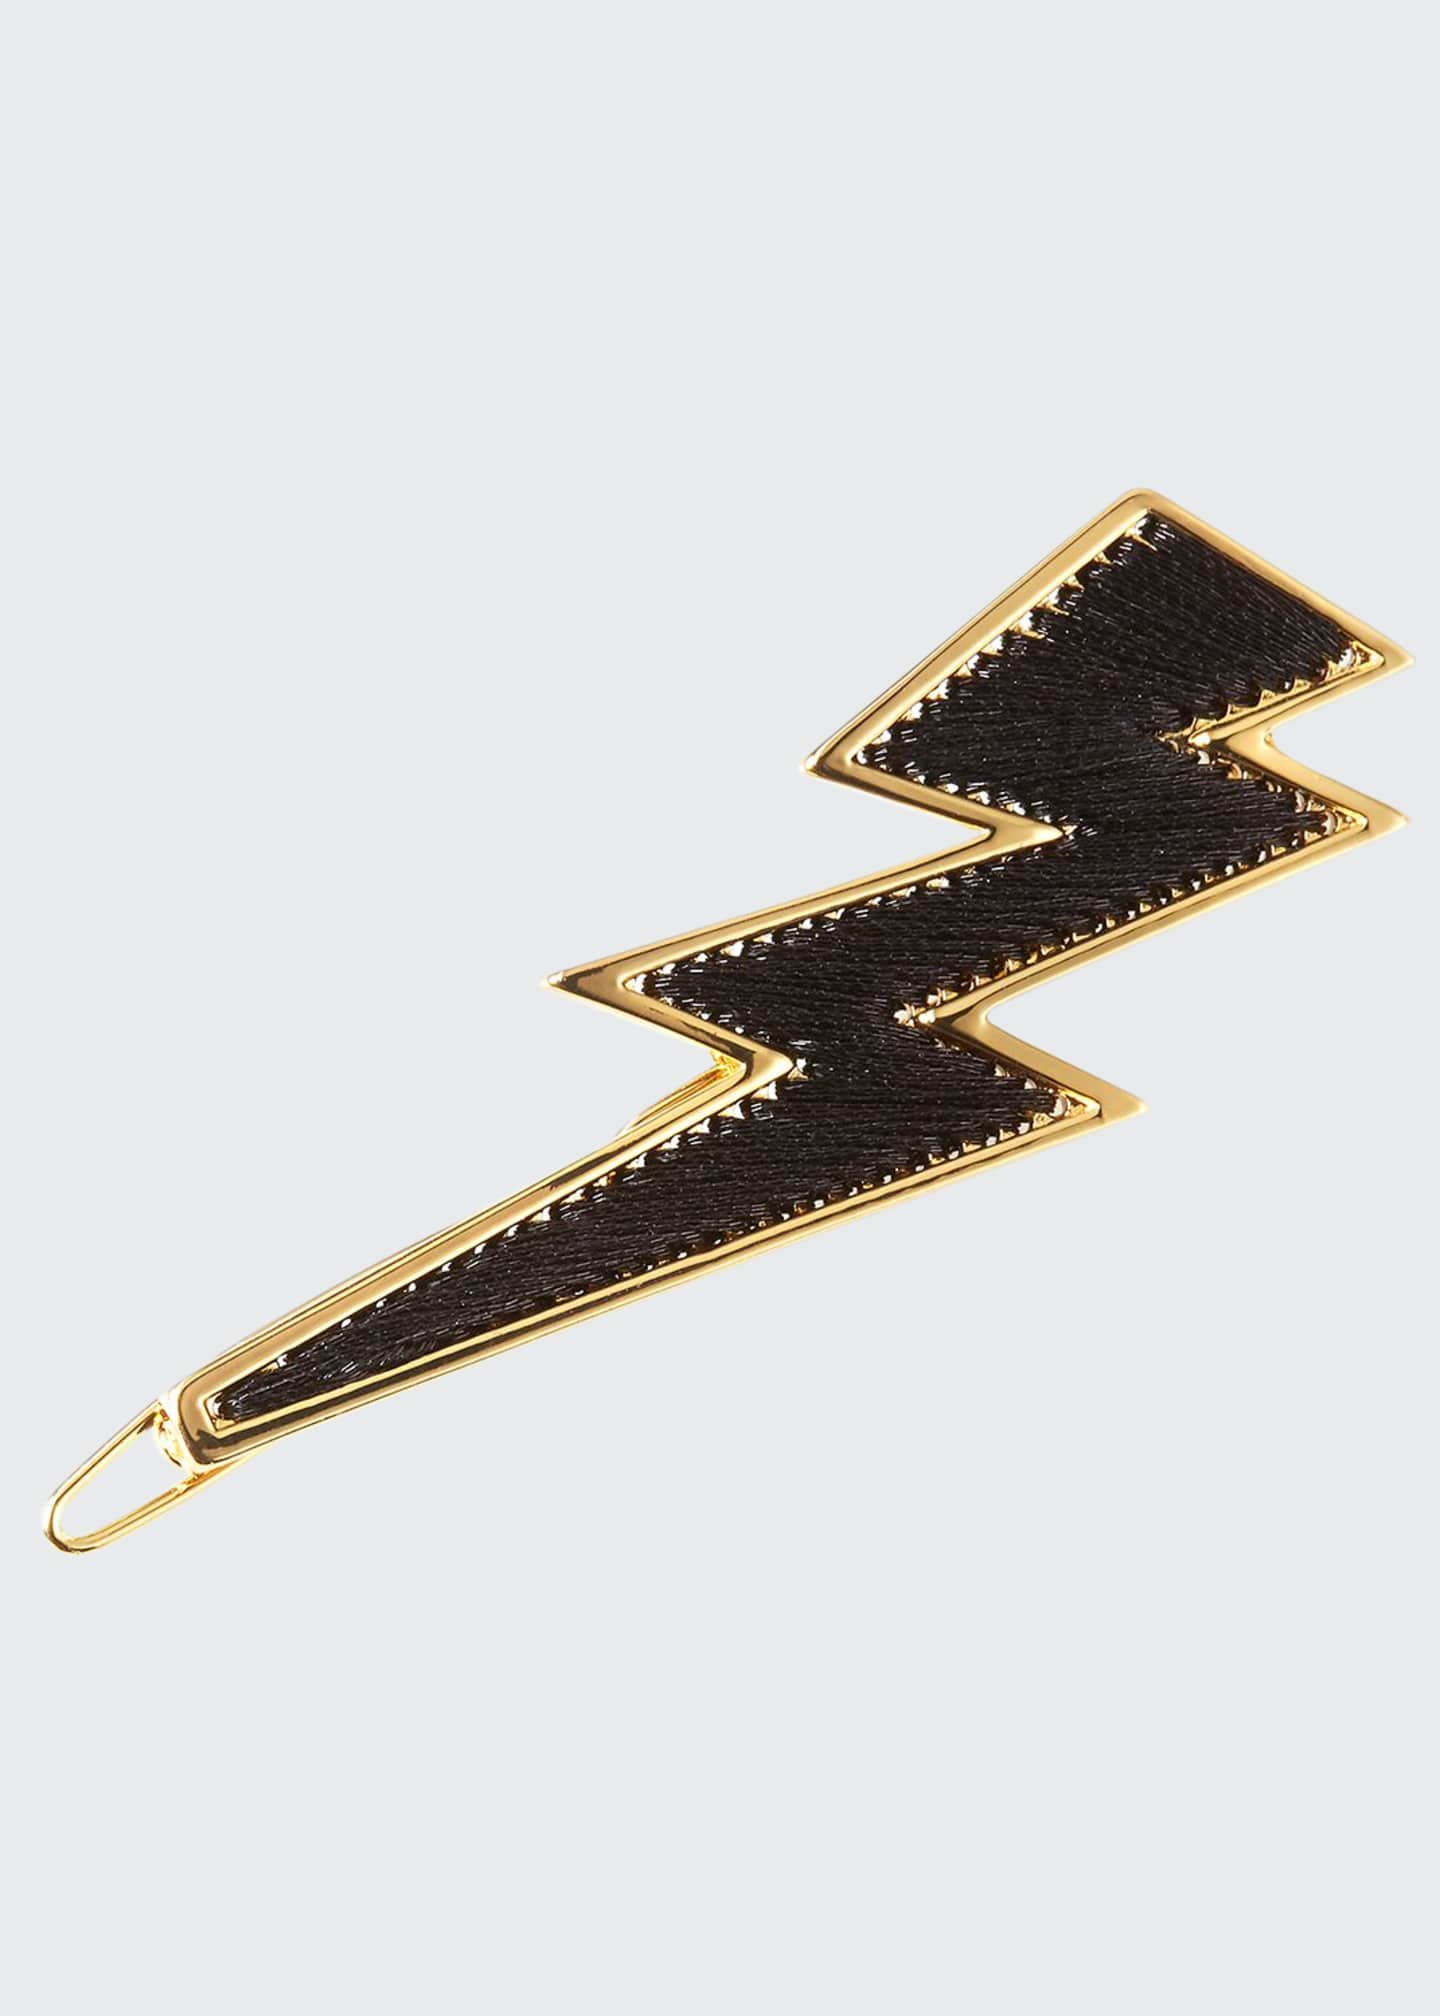 Mignonne Gavigan 14K Gold Threaded Lightning Bolt Hair